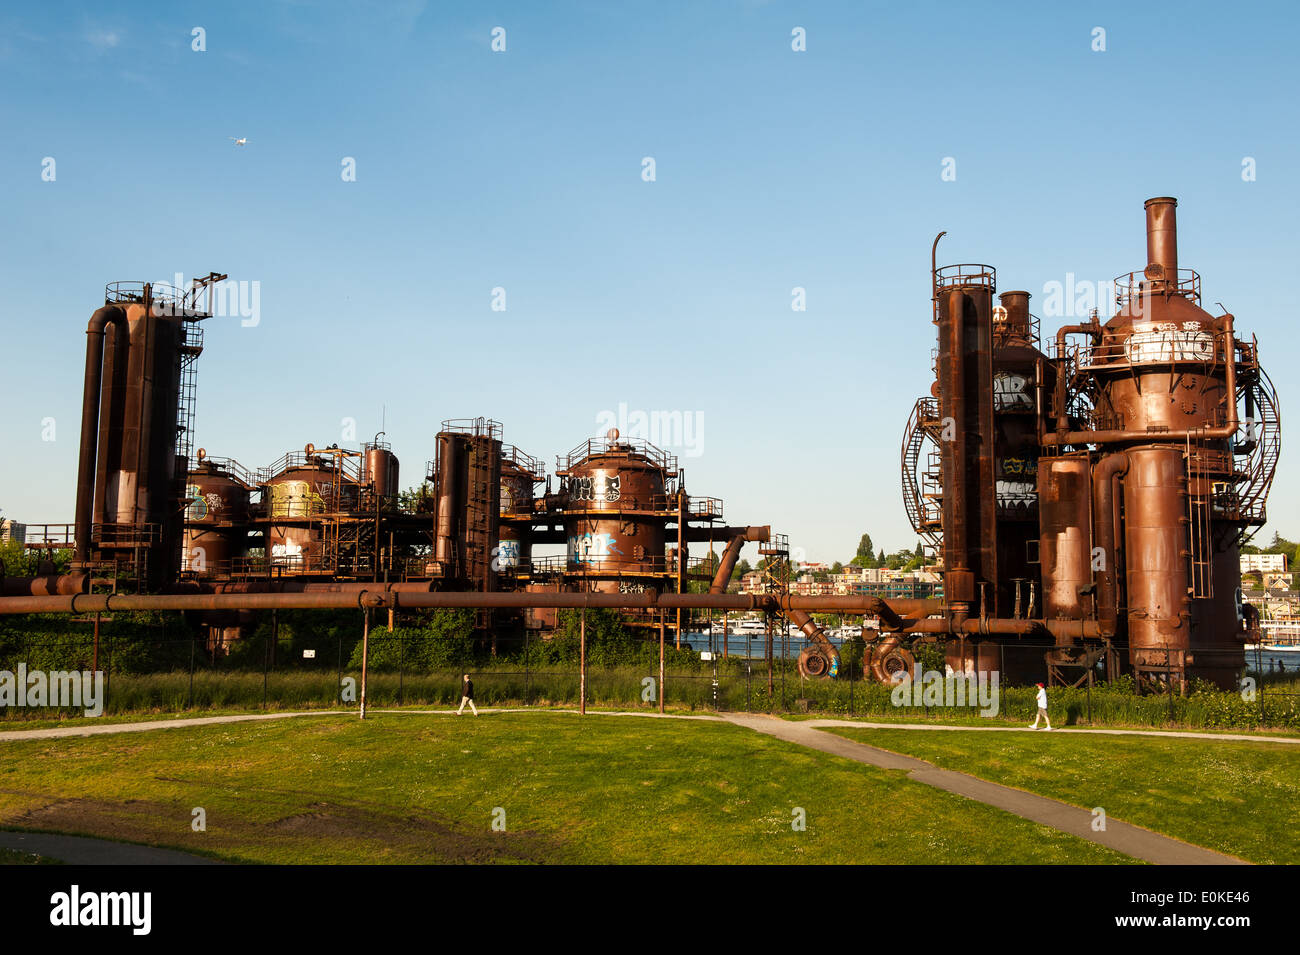 Gas Works Park was formally a gasification plant which was converted into a public space in 1975. - Stock Image